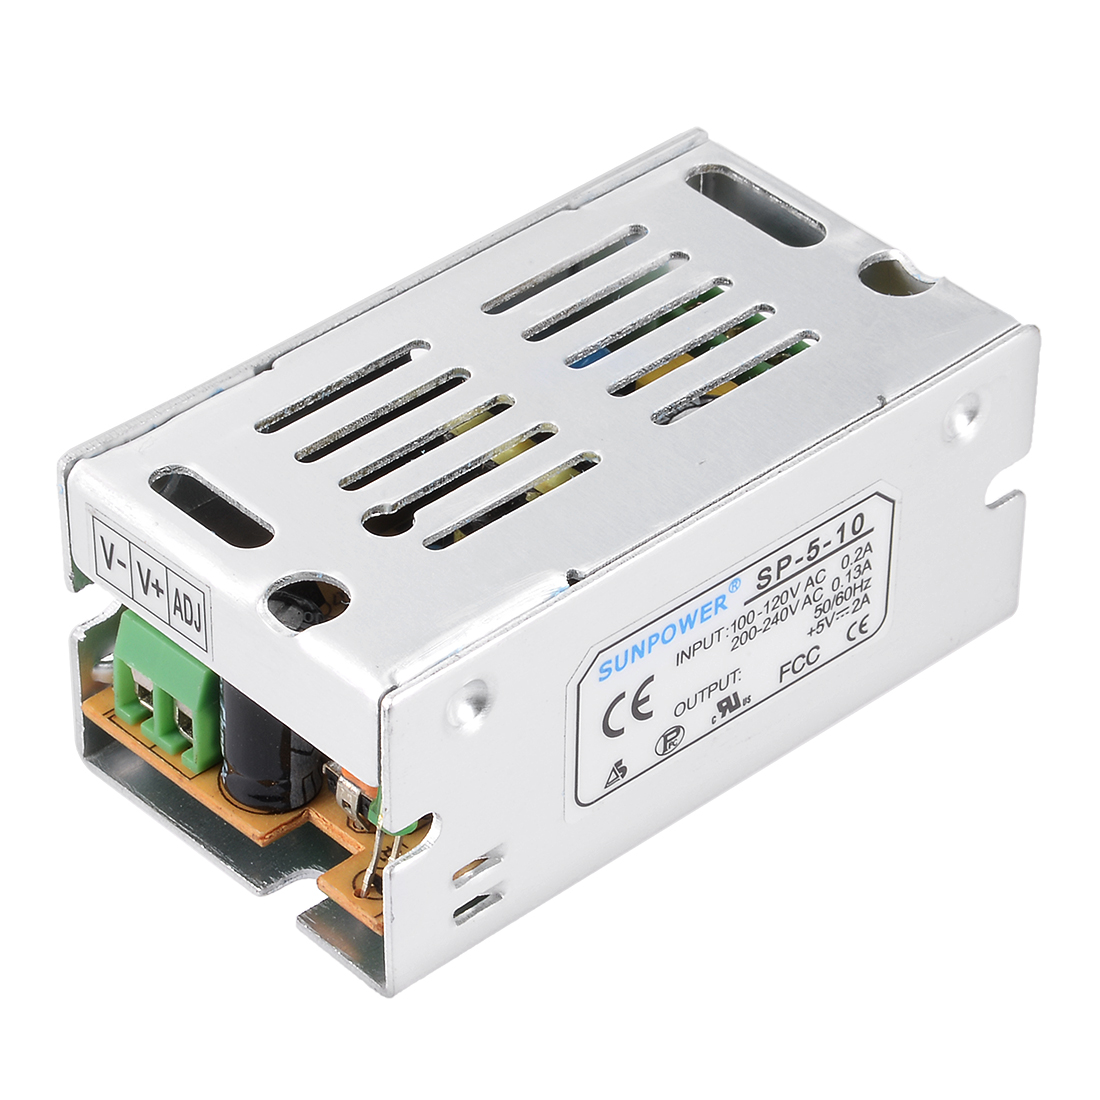 AC 100-120V/200-240V to DC 5V 2A 10W Switching Power Supply Drive for LED Strip